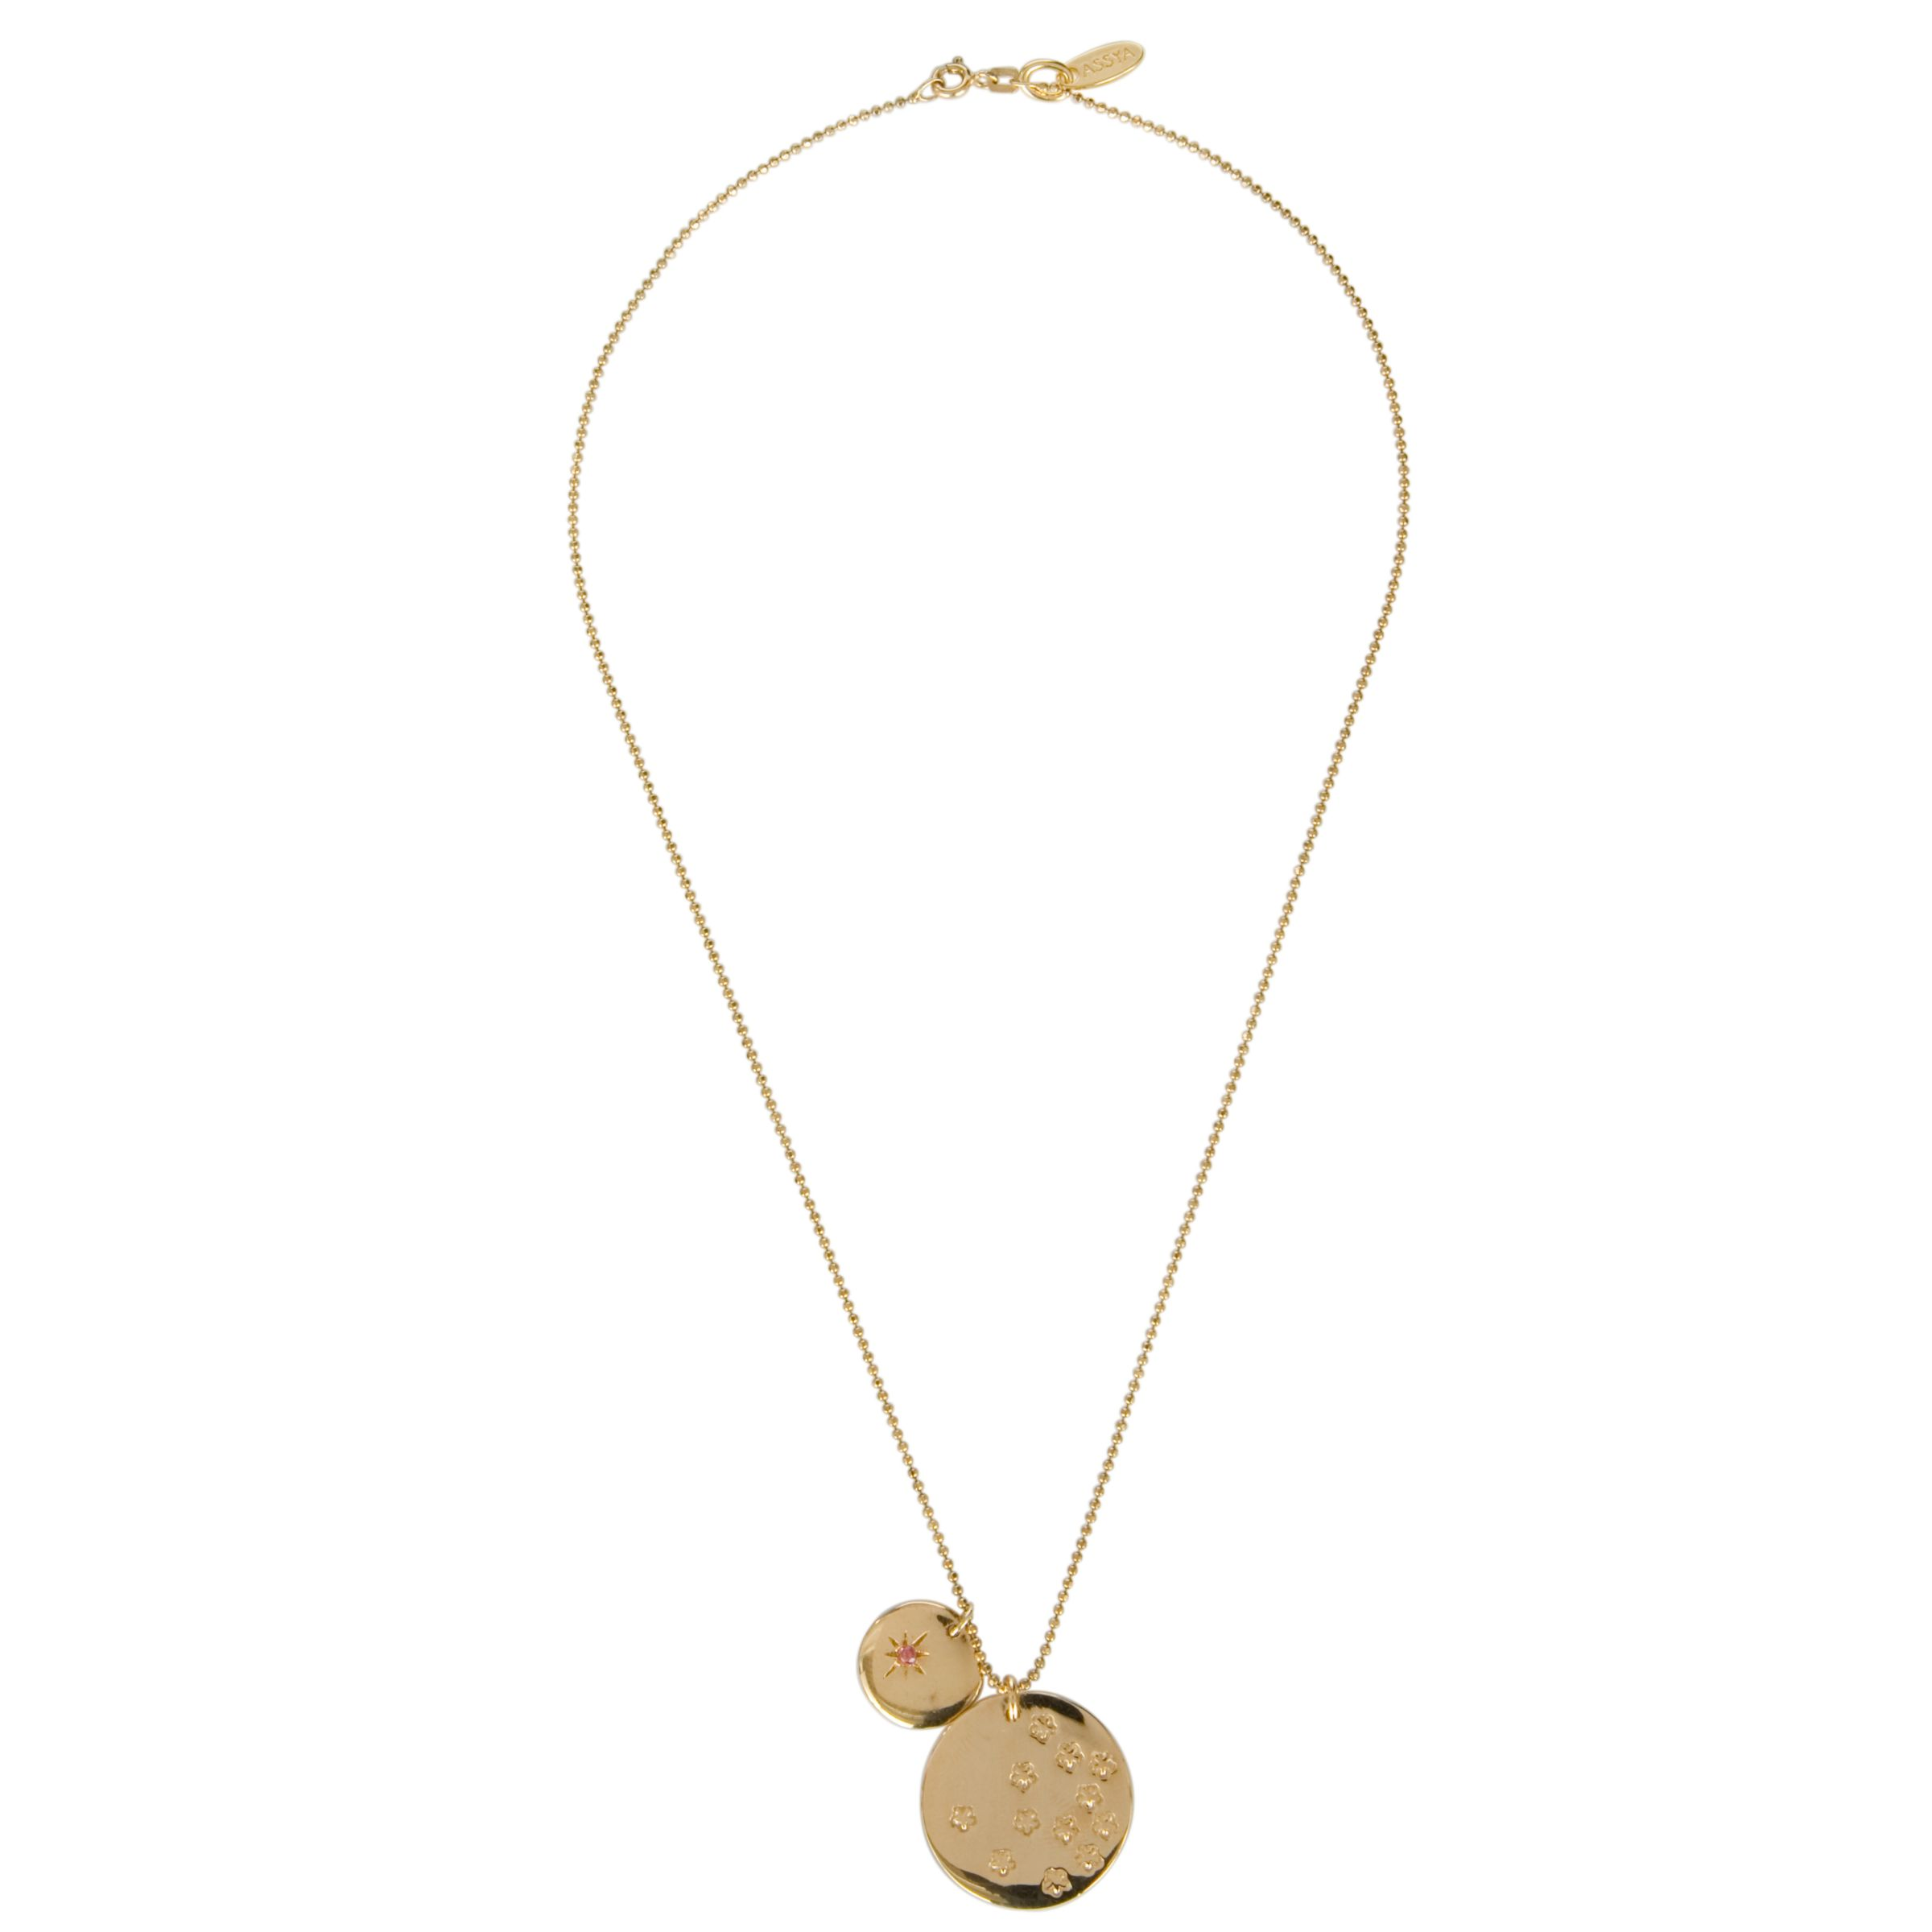 Assya Love Medium Disc Star 18ct Gold Plate Pendant Necklace